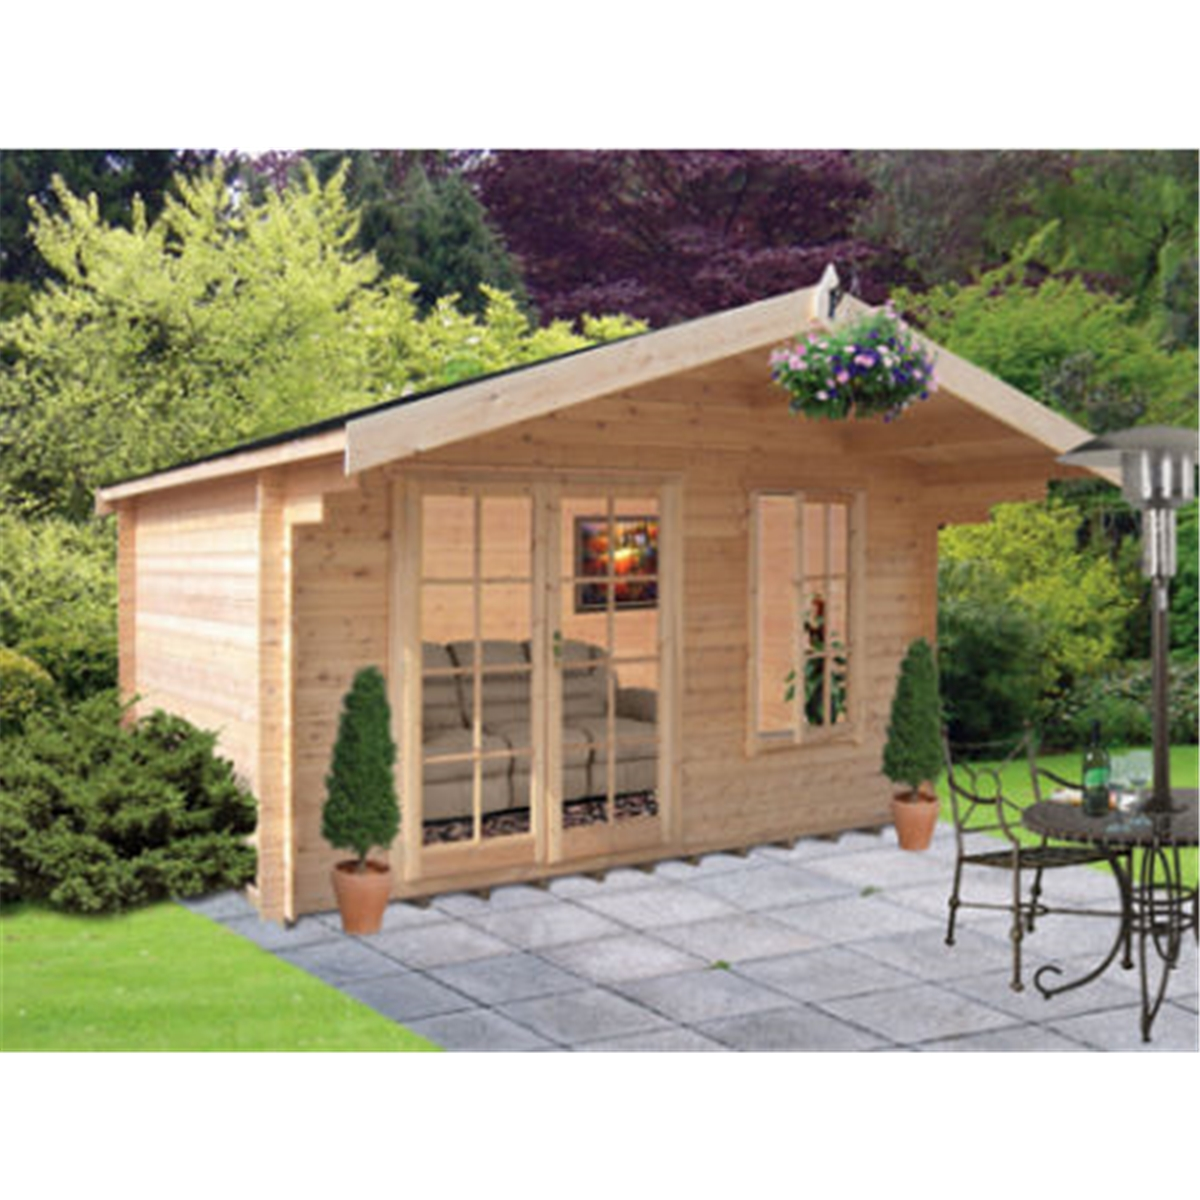 Garden Houses & Buildings 3.59m x 2.99m Log Cabin With Fully Glazed Double Doors - 28mm Wall Thickness